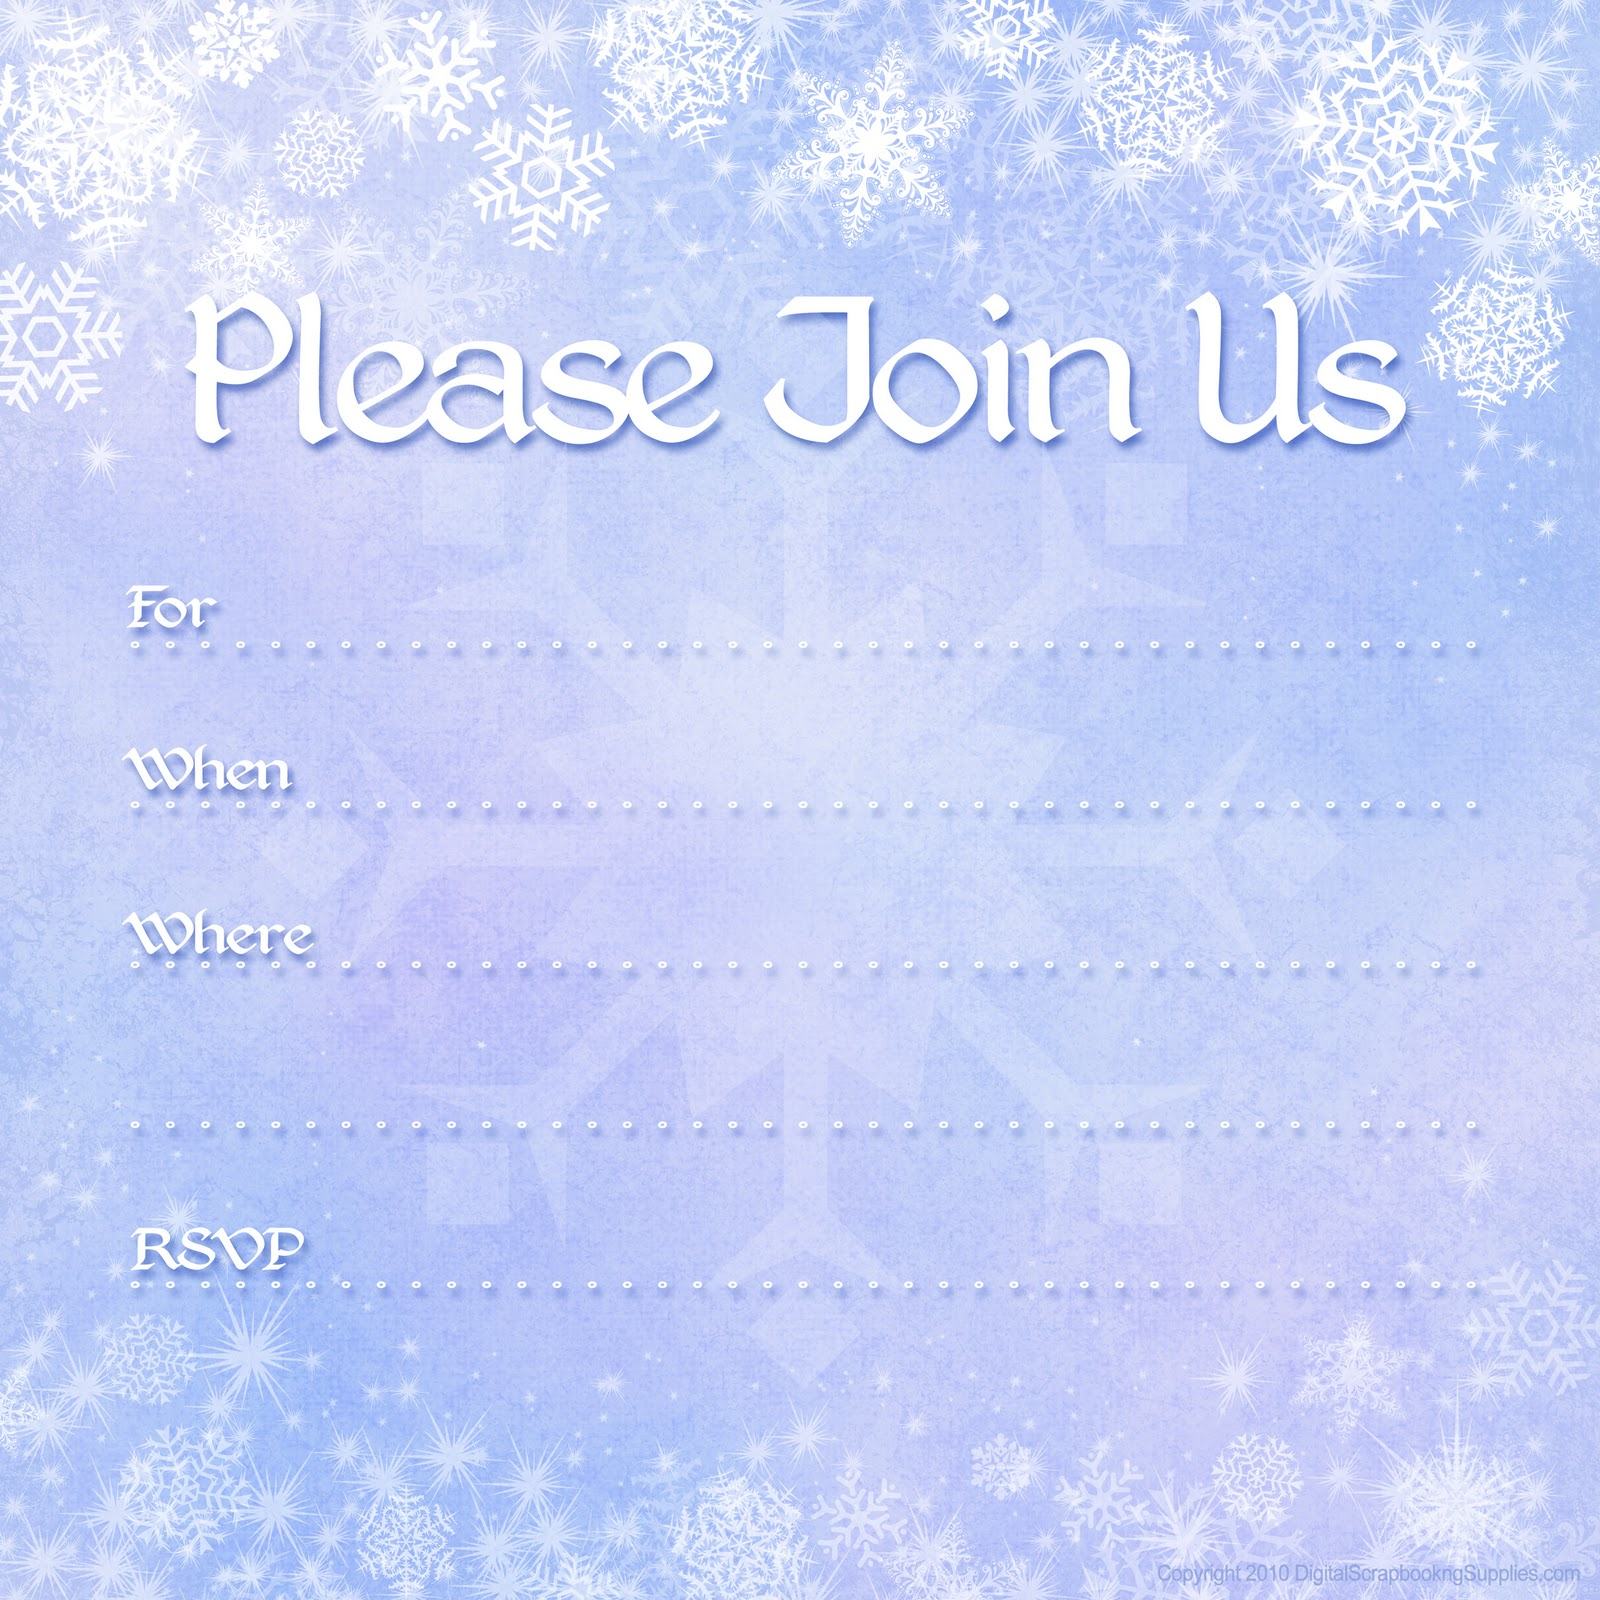 Free Printable Party Invitations: Free Winter Holiday Invitations